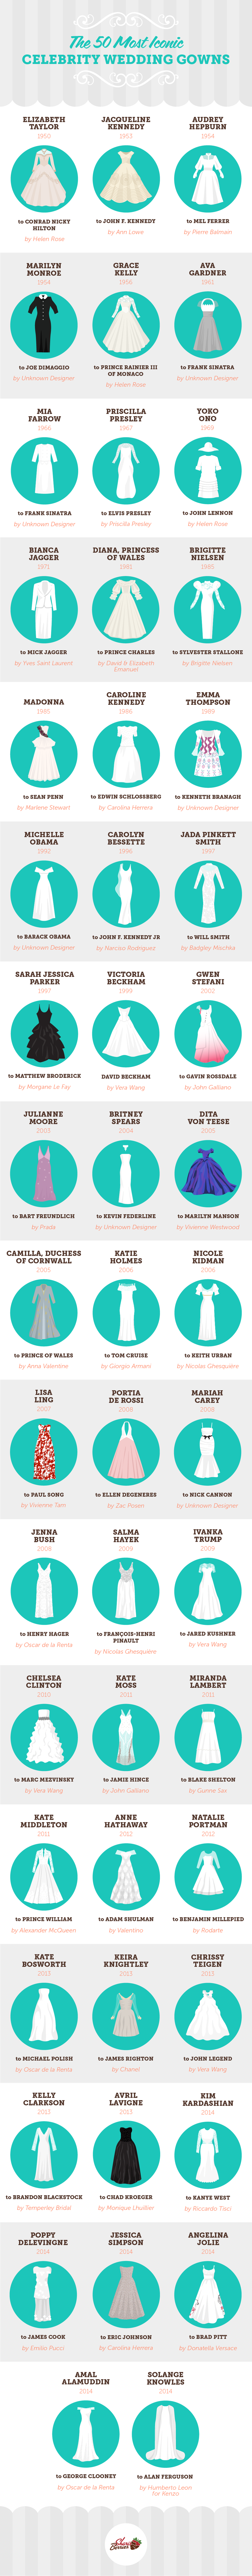 50 Amazing Celebrity Wedding Dresses by Berries.com